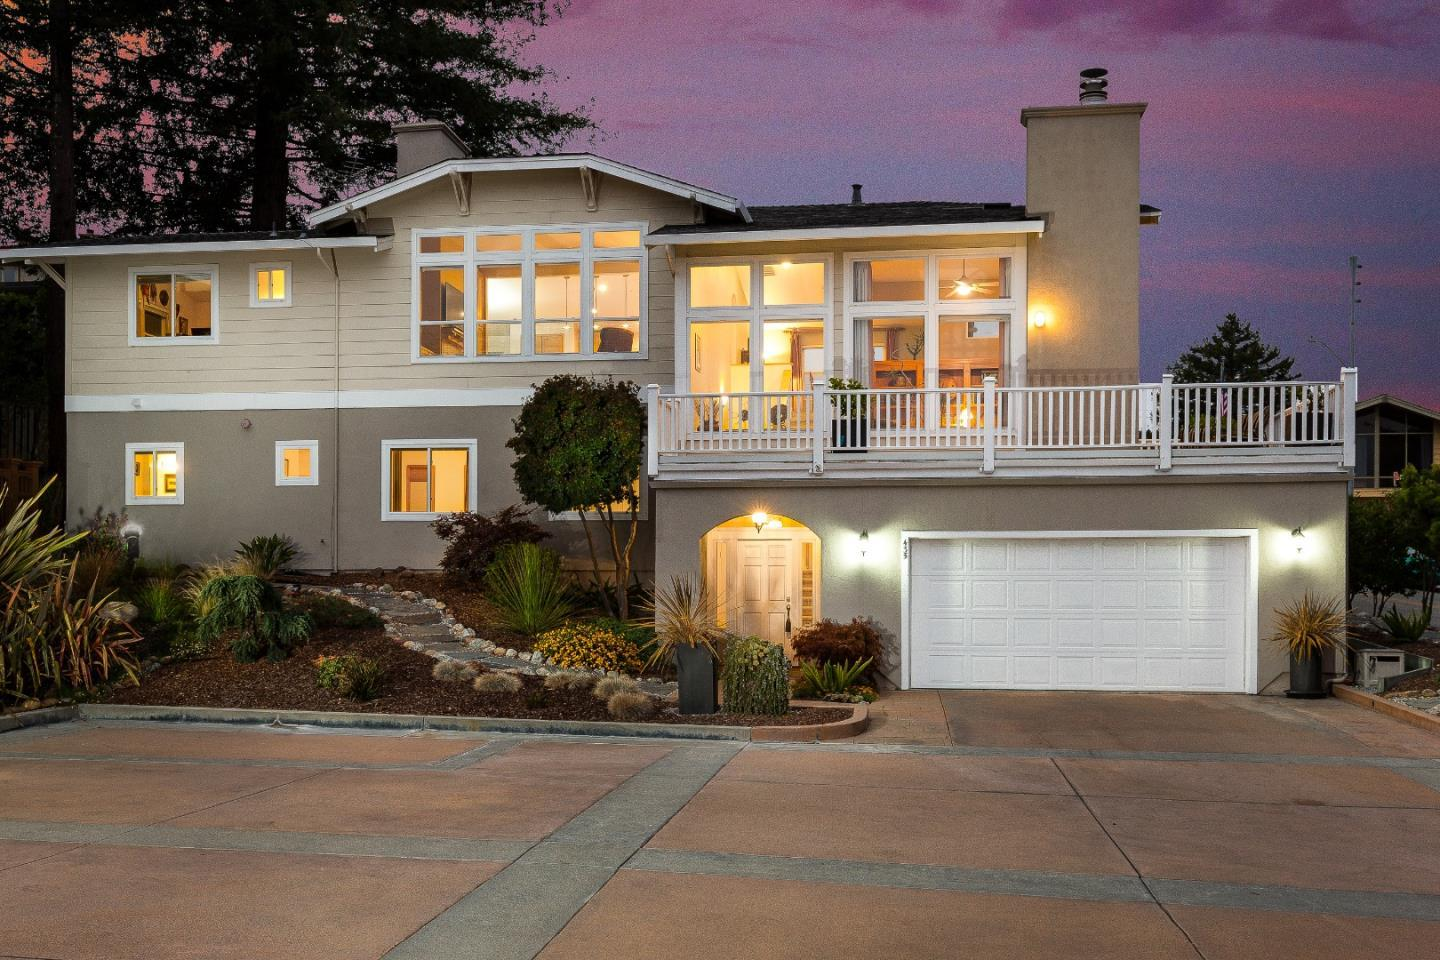 Gorgeous Ocean AND Mountain View Cabonera Estates Home! Spacious 3 bed home plus office and library w/great reverse floor plan. Large open gourmet kitchen with Granite tile, JennAir electric oven/convection microwave with downdraft gas stove top, Sub-Zero built-in fridge, and updated Bosch stainless steel dishwasher. Elegant separate dining room; every room in the high ceiling home is drenched in light from large windows; custom shades from Hunter Douglas. Large master suite has walk in closet, huge travertine bathroom with over-sized shower, double sinks and designed for privacy. Throughout the home you will find an abundance of build-ins, closets, book shelves and display spaces. Many updates, lightly lived in, and well maintained. Located perfectly in hill top Carbonera Estates; commuter-ready access to Hwy 17 with convenient access to downtown, harbor, beaches and other Santa Cruz local favorites. Views from spacious decks all around this beautiful home!